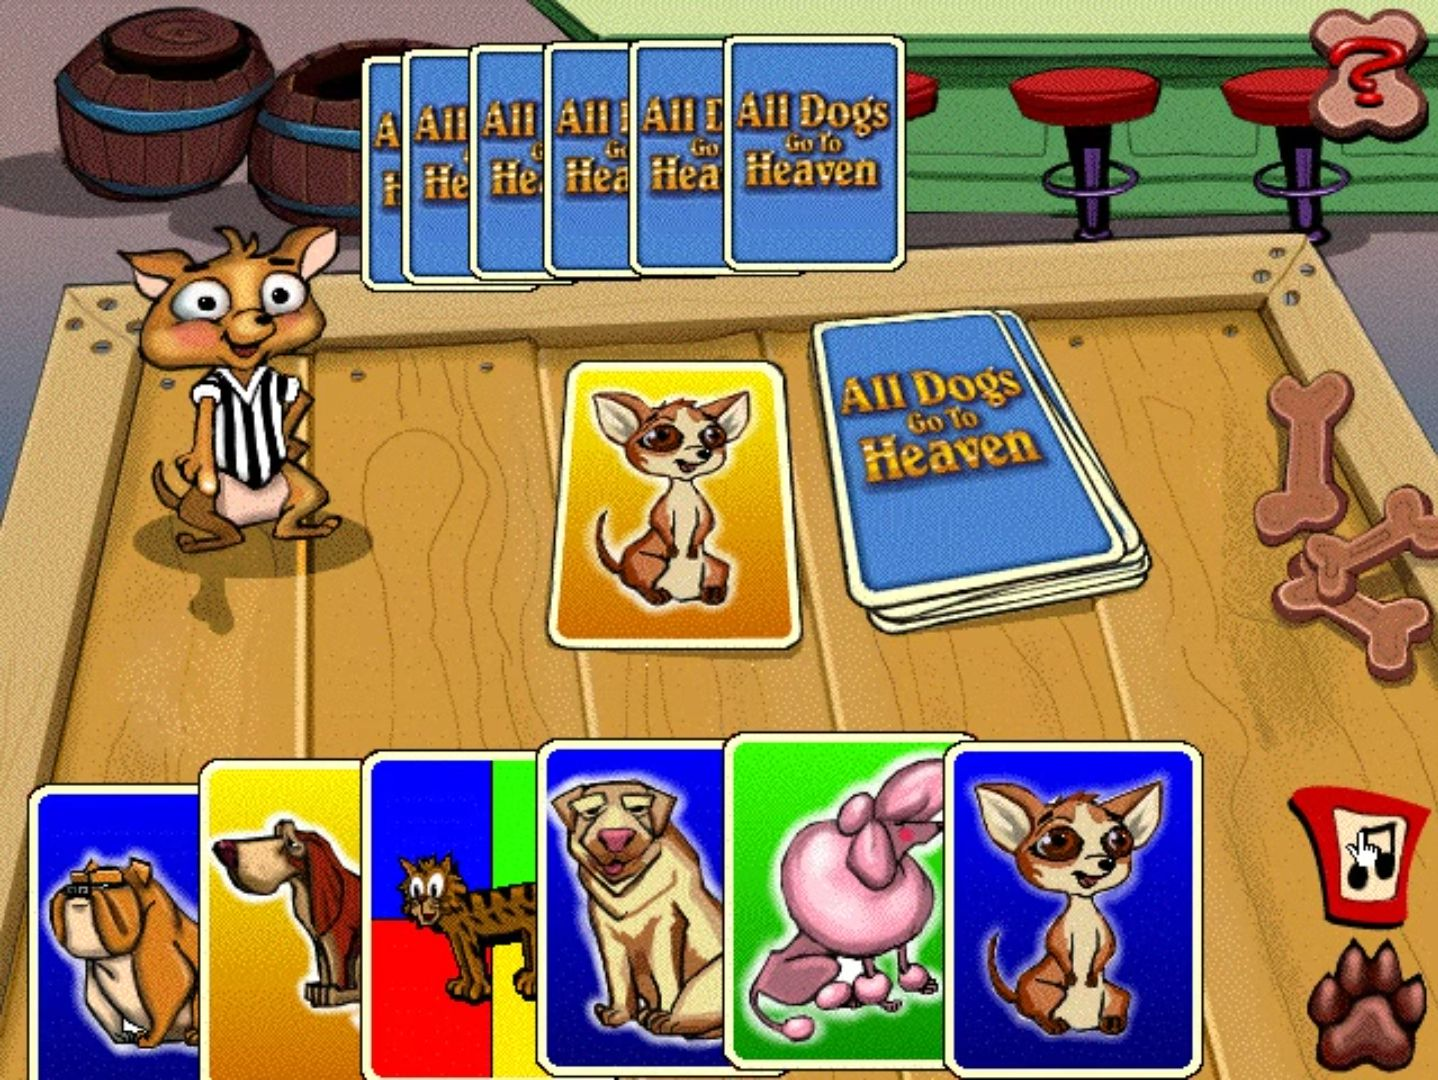 All Dogs Go To Heaven Activity Center (Game) - Giant Bomb